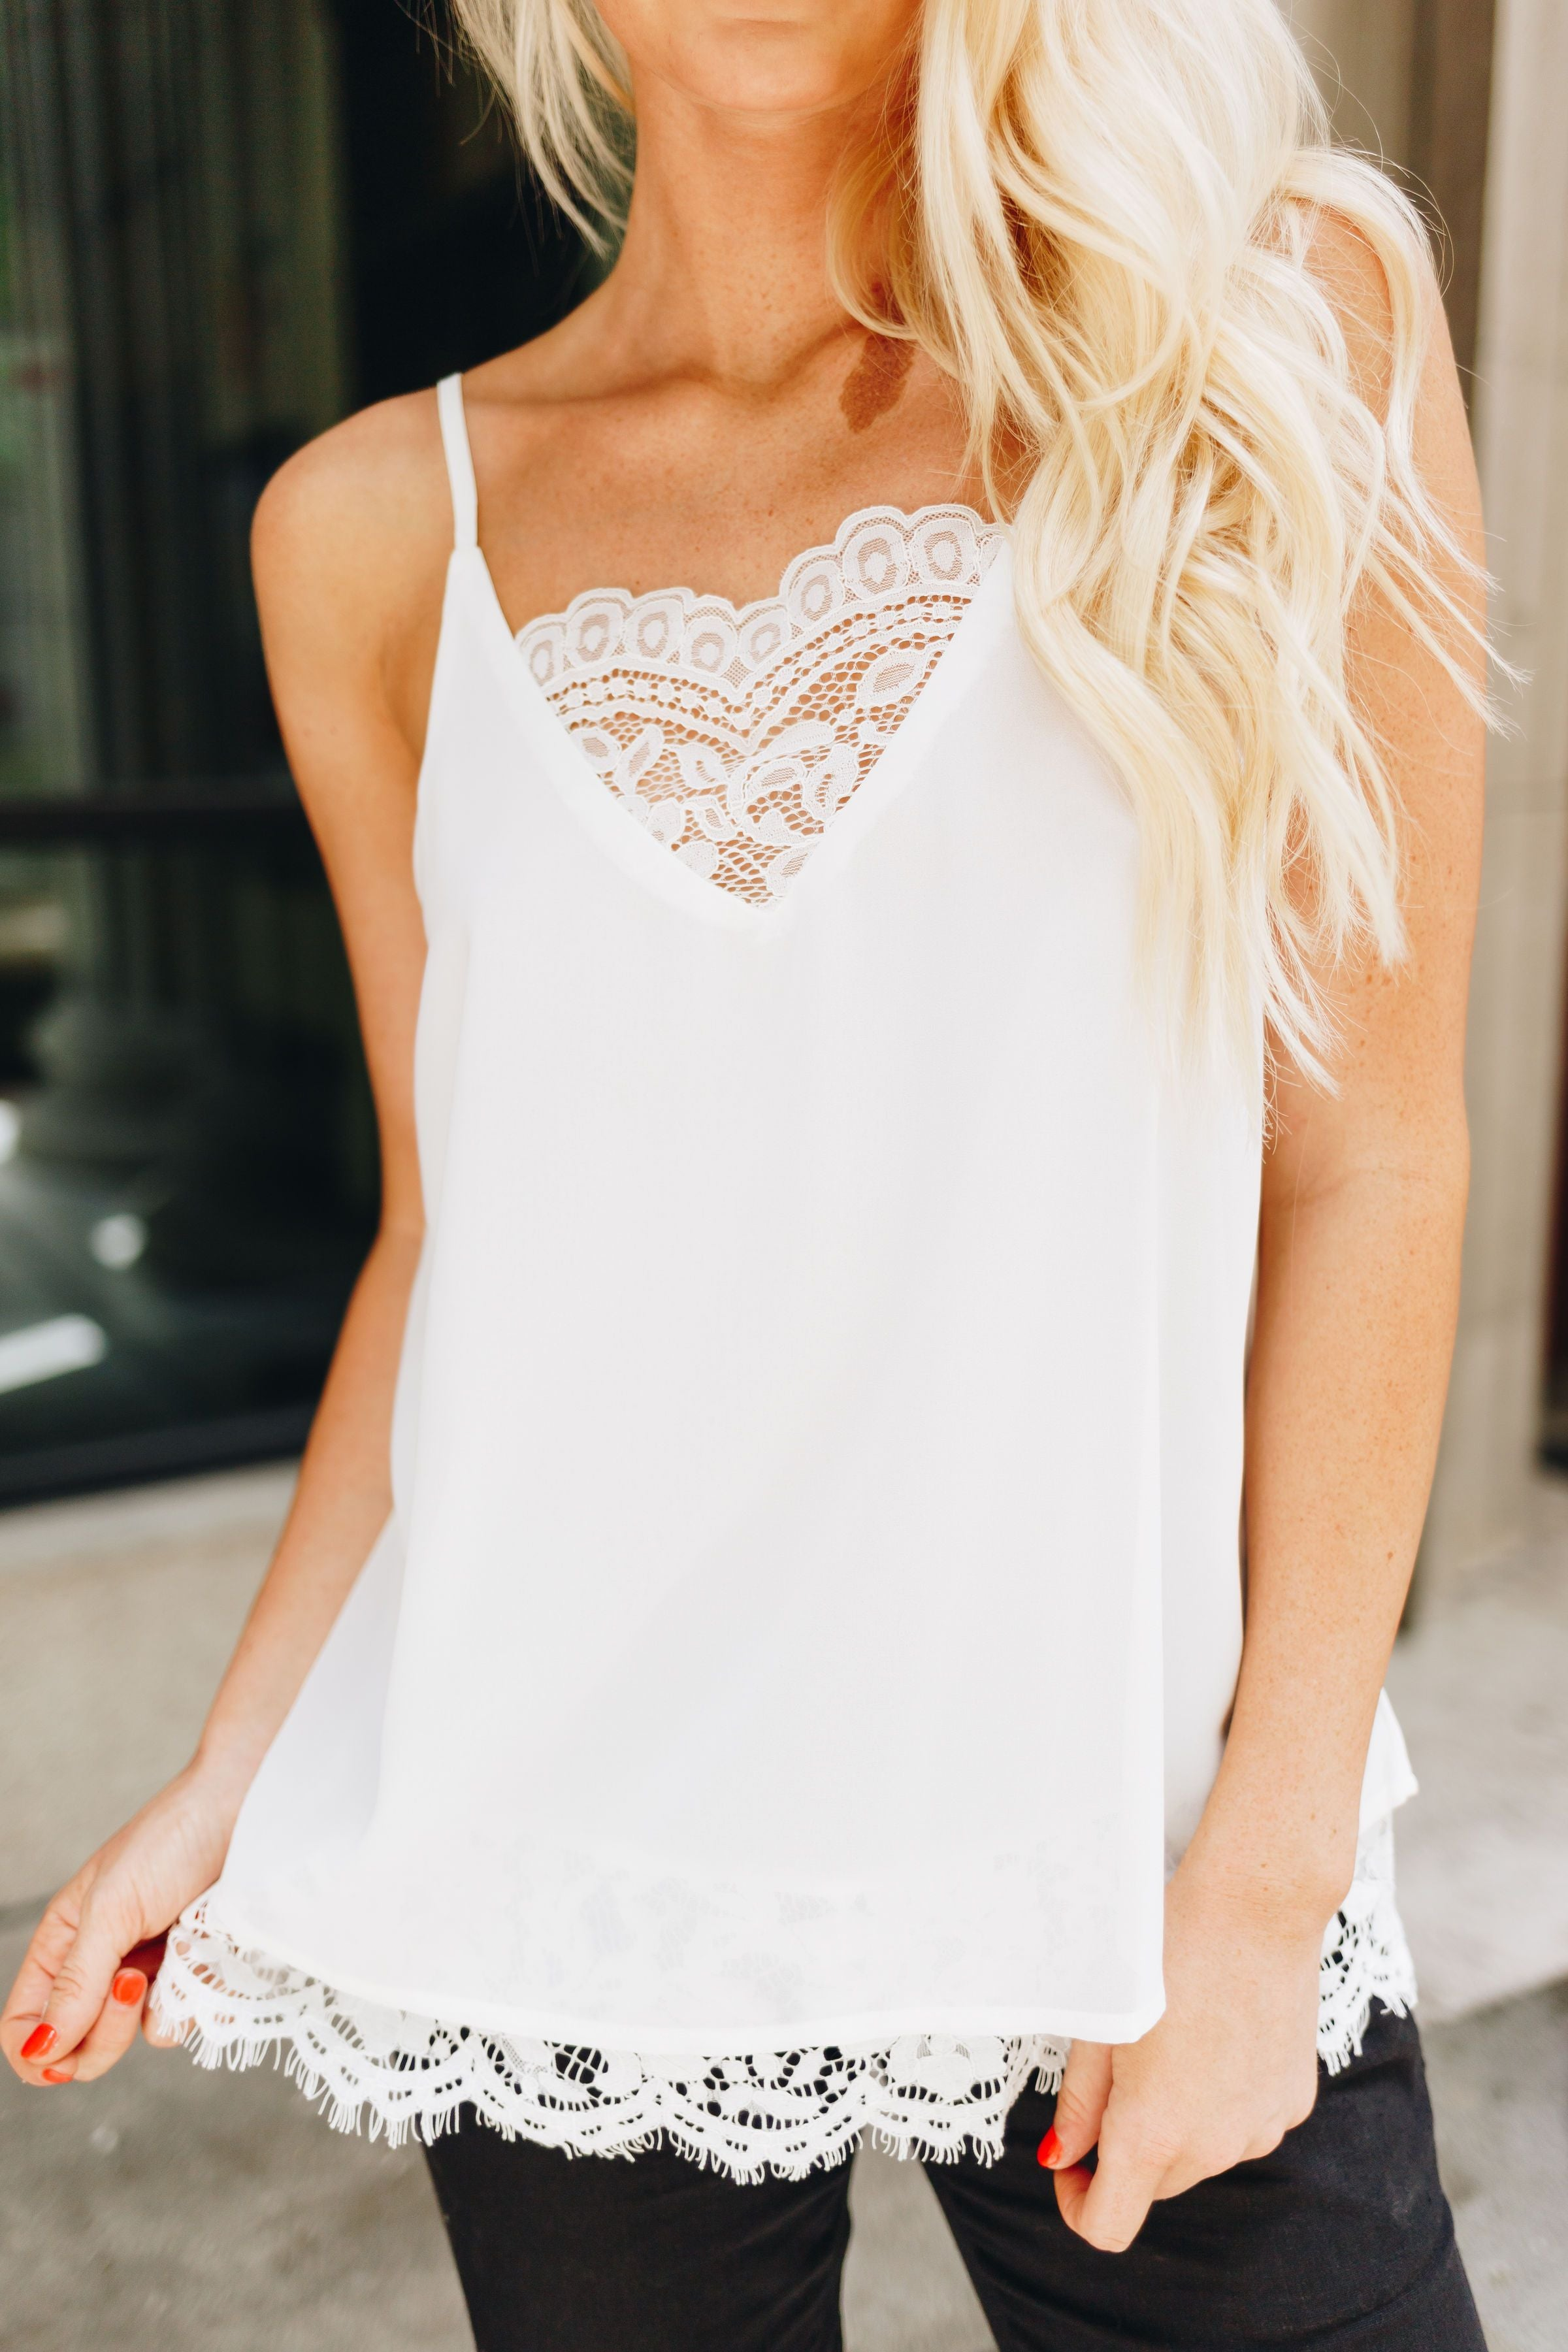 Frosted With Lace Camisole In White